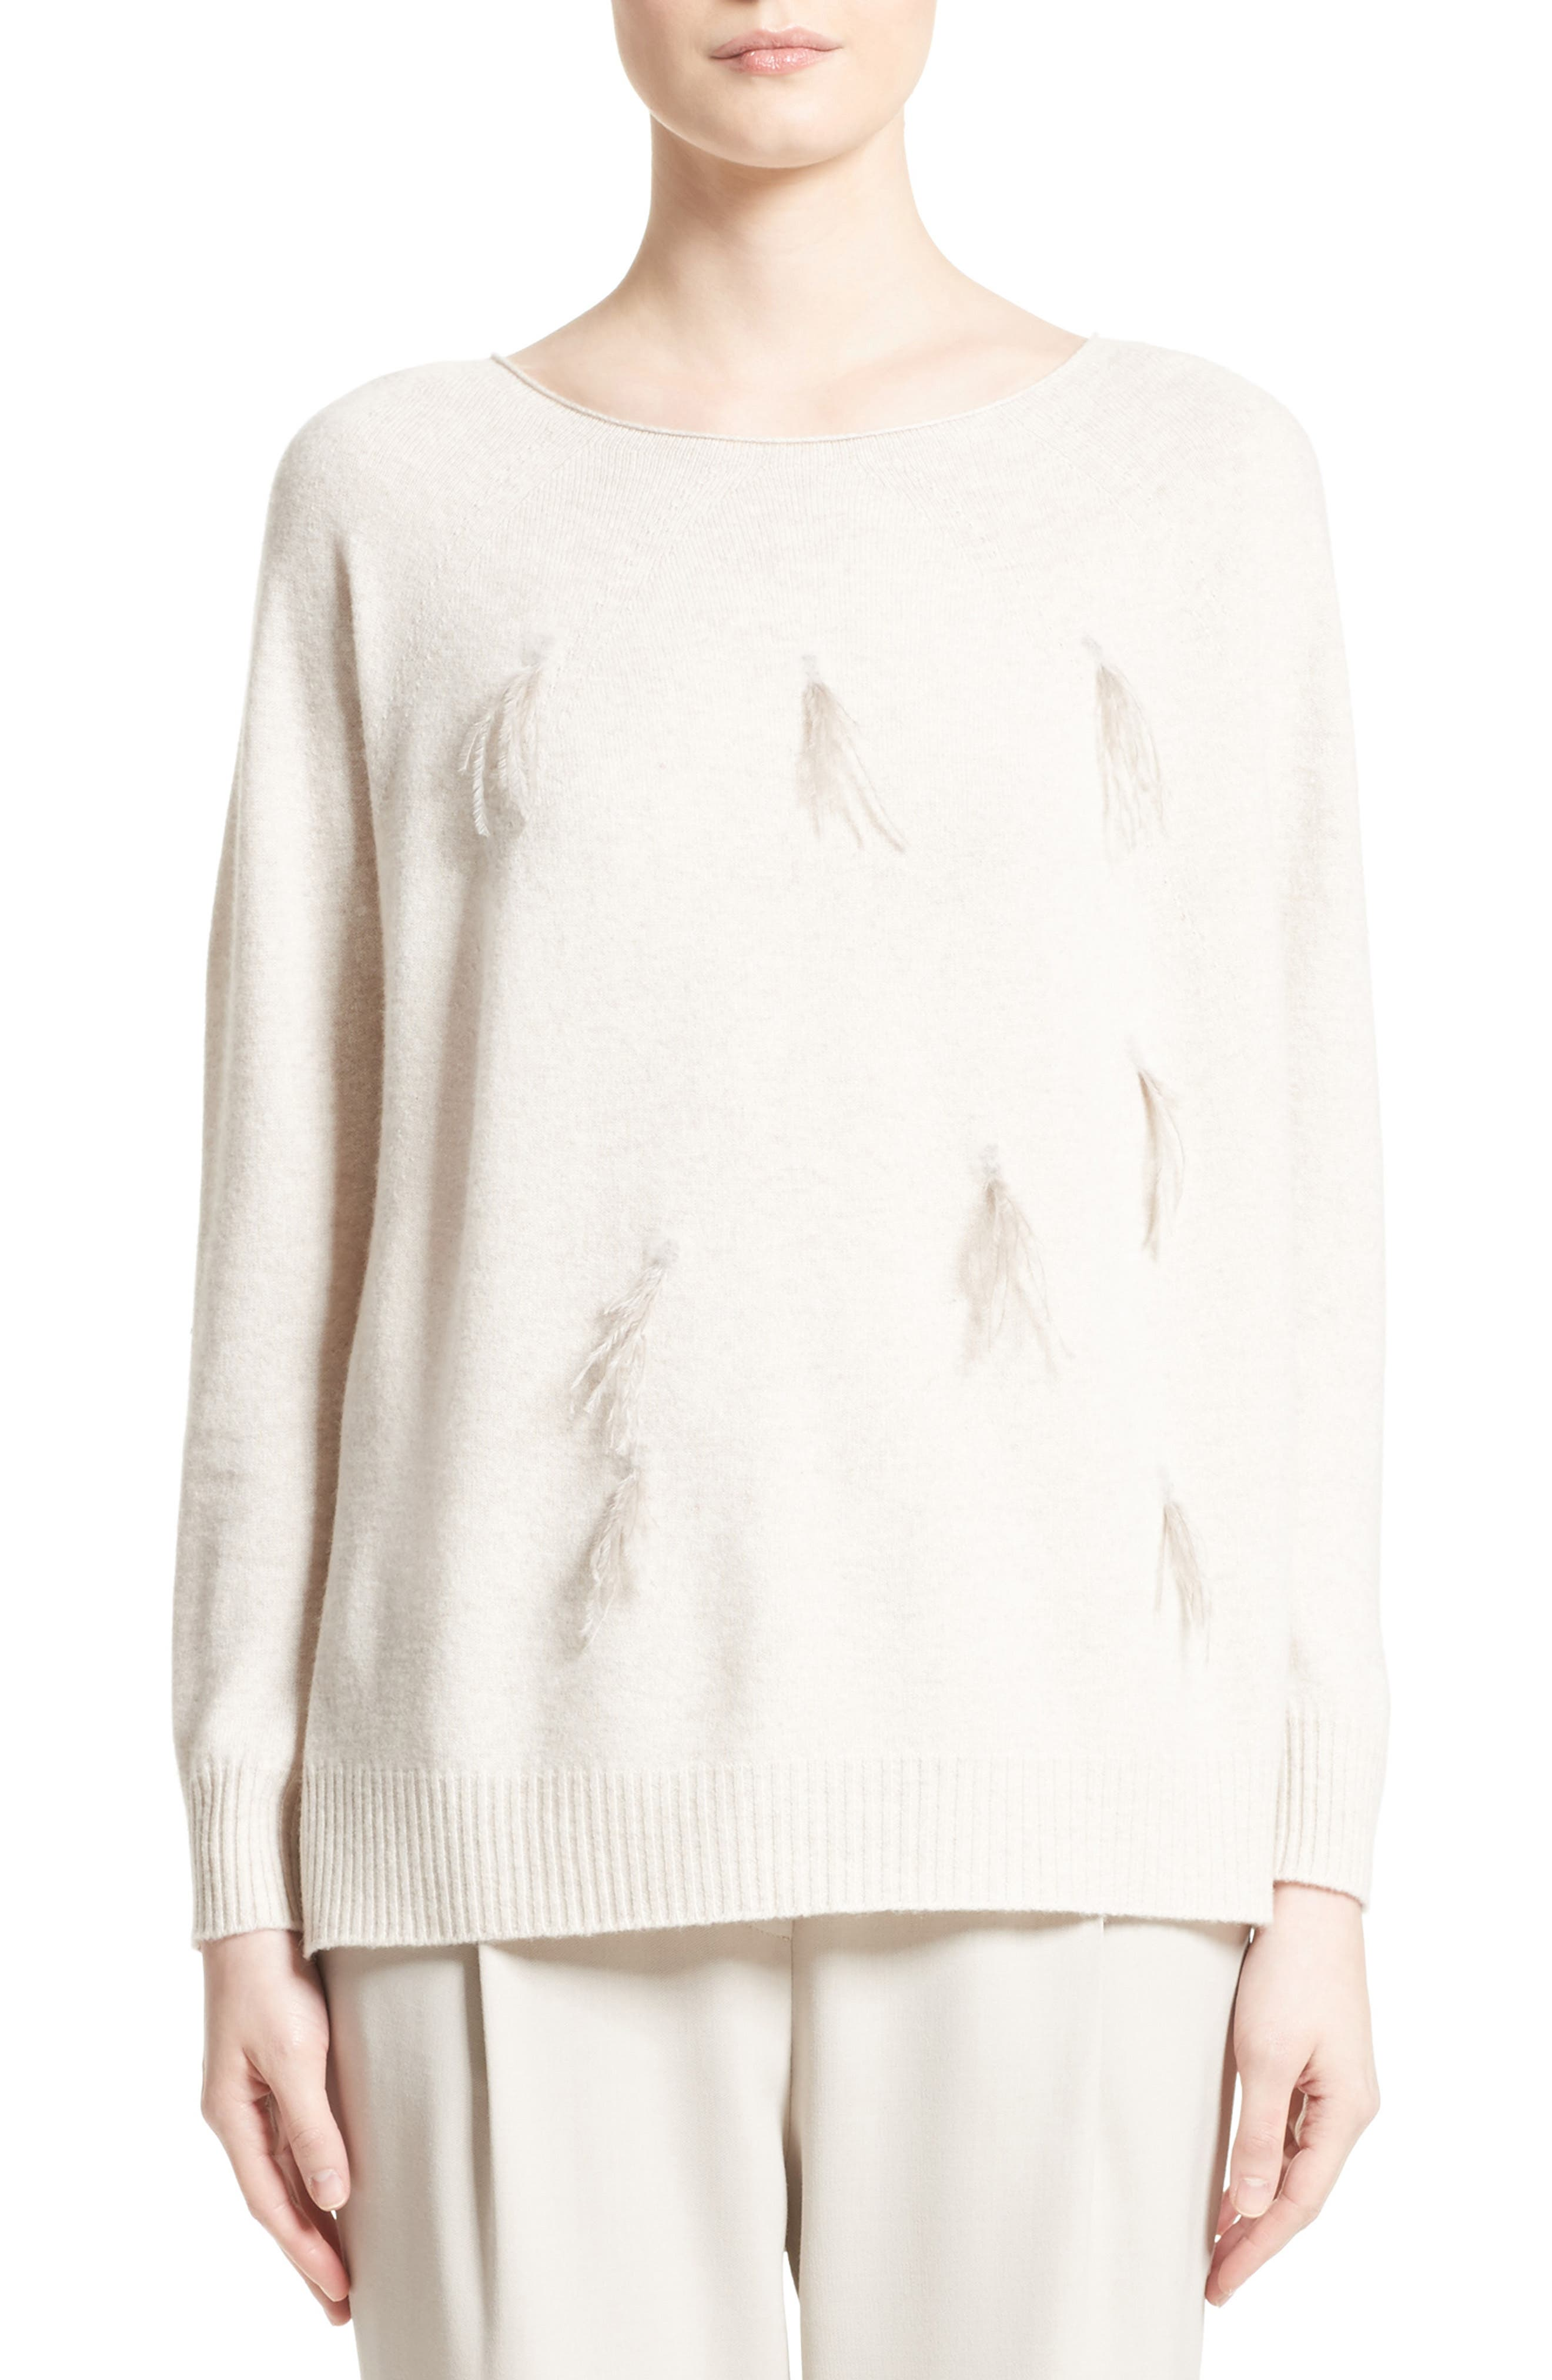 Needle Punch Ostrich Feather Trim Sweater,                             Main thumbnail 1, color,                             Oatmeal